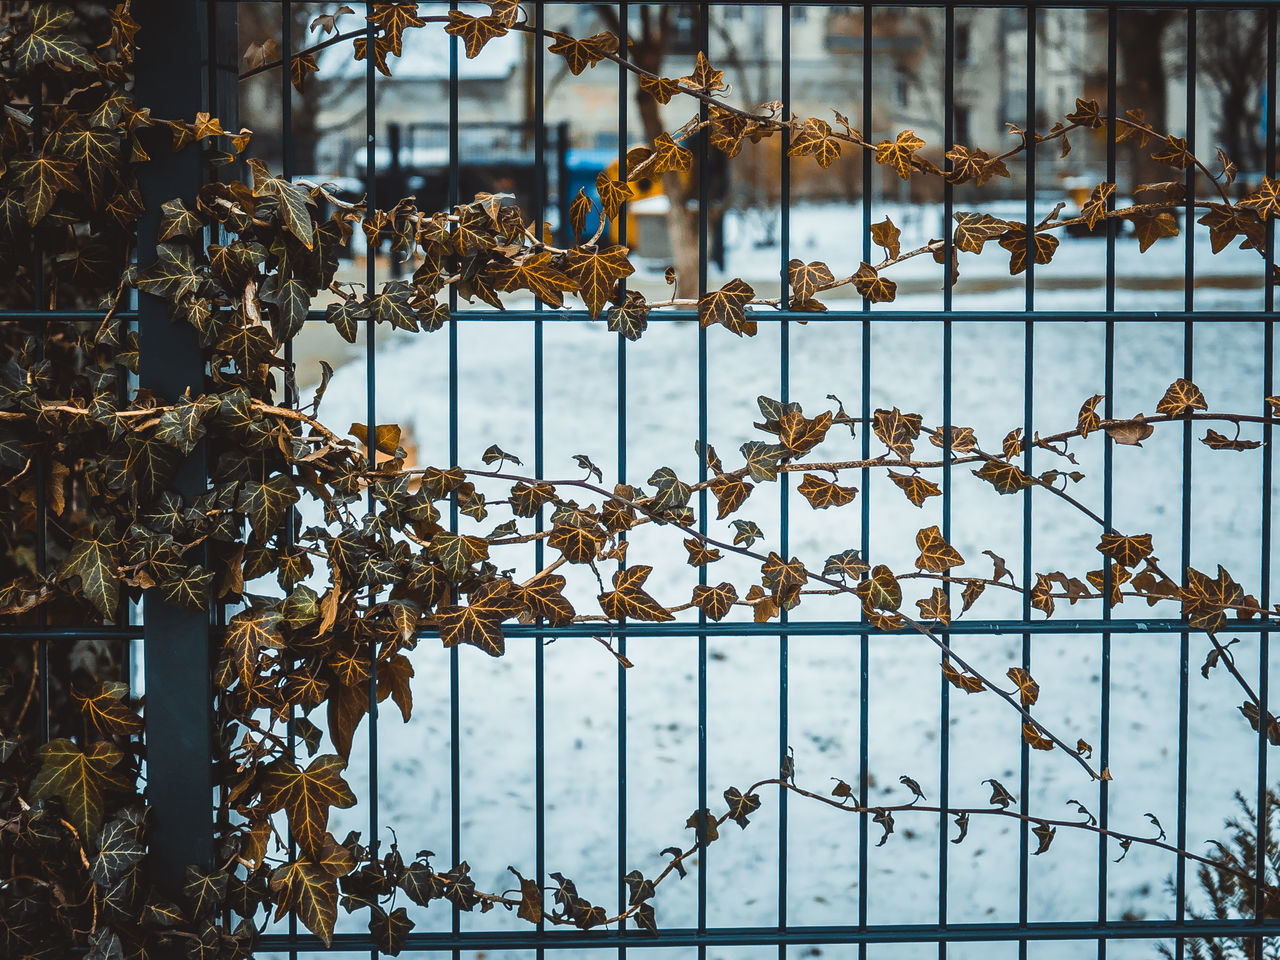 Berlinstagram Cityscape Close-up Day Explore Fence Leafes No People Outdoors Snowfall Urbanwinter Vines Weather Winter Winter In Berlin Winter In The City Winterwonderland